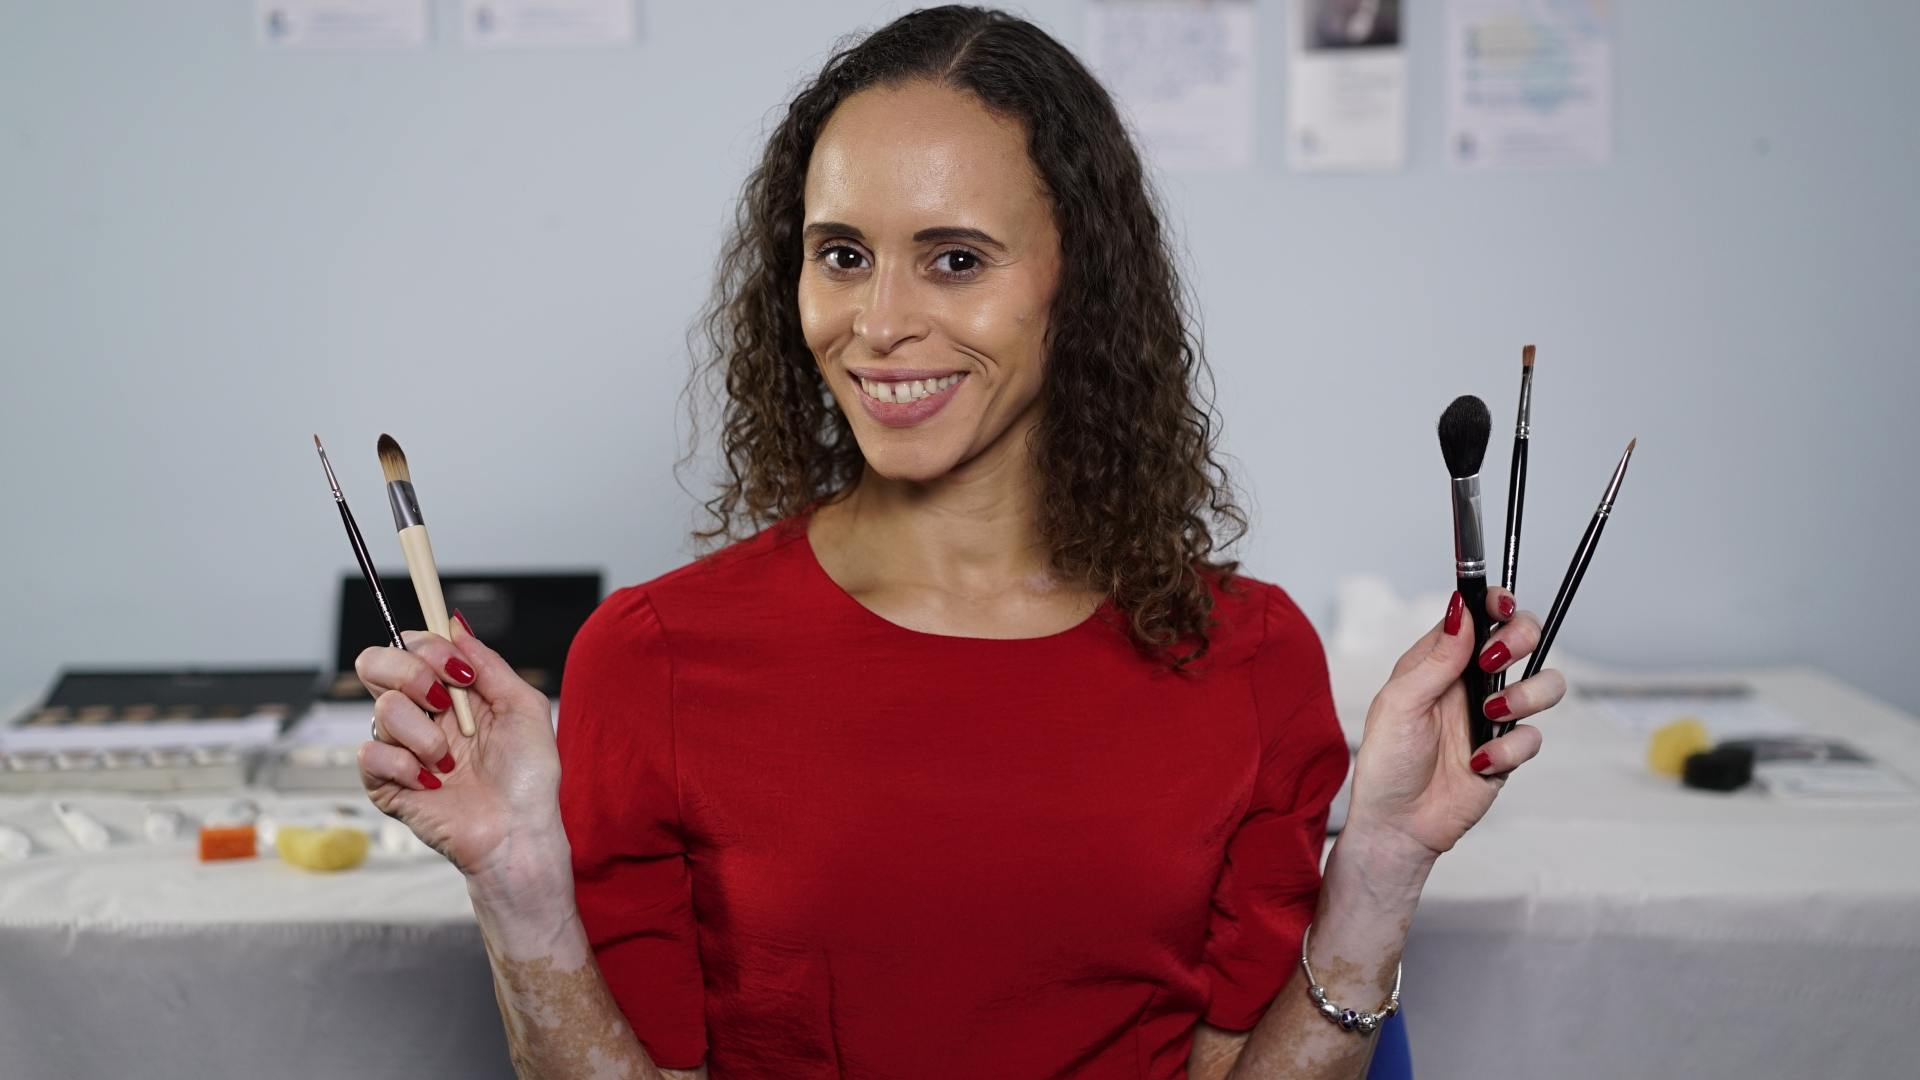 A woman in a red top with vitiligo on her arms holding up skin camouflage brushes and smiling at the camera